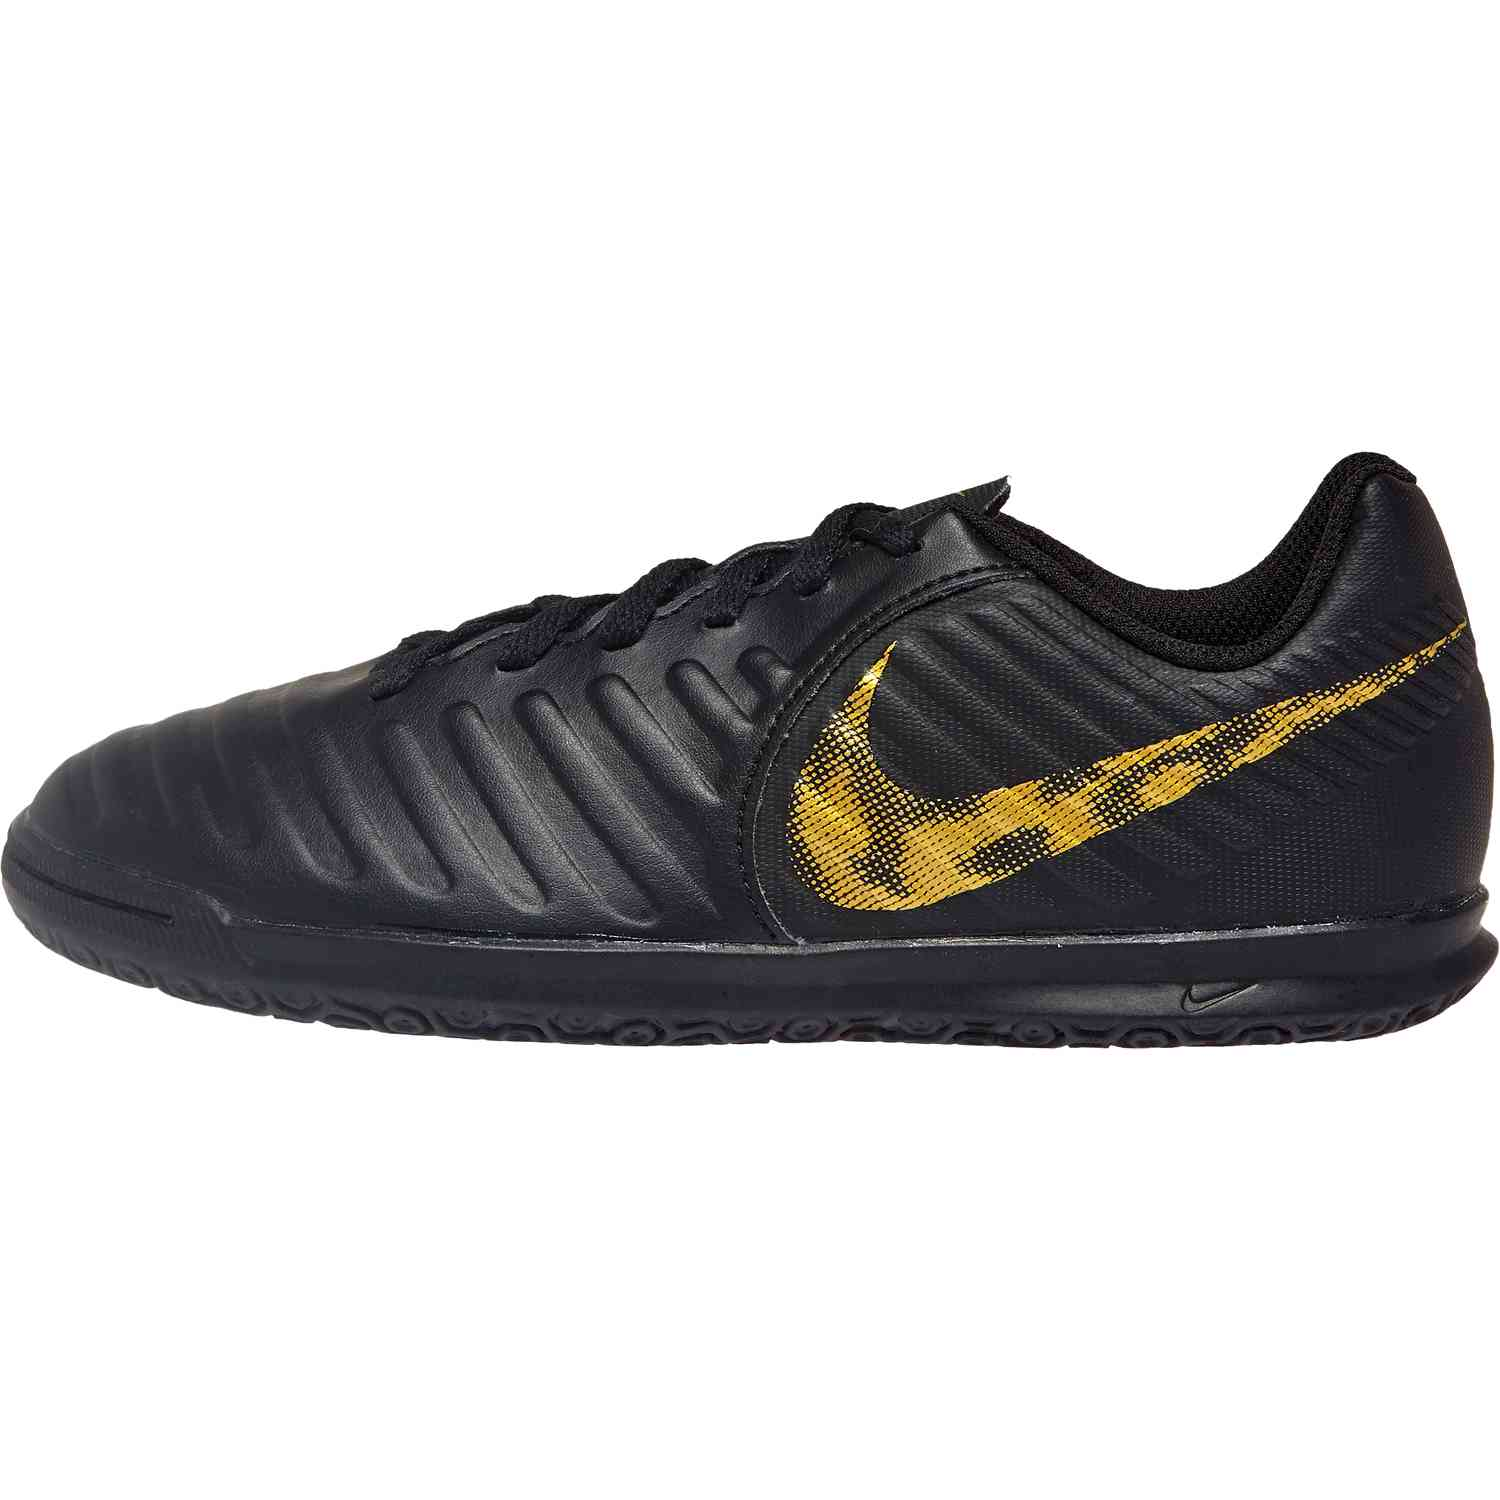 separation shoes 87a62 b21df Kids Nike Tiempo Legend 7 Club IC – Black Lux